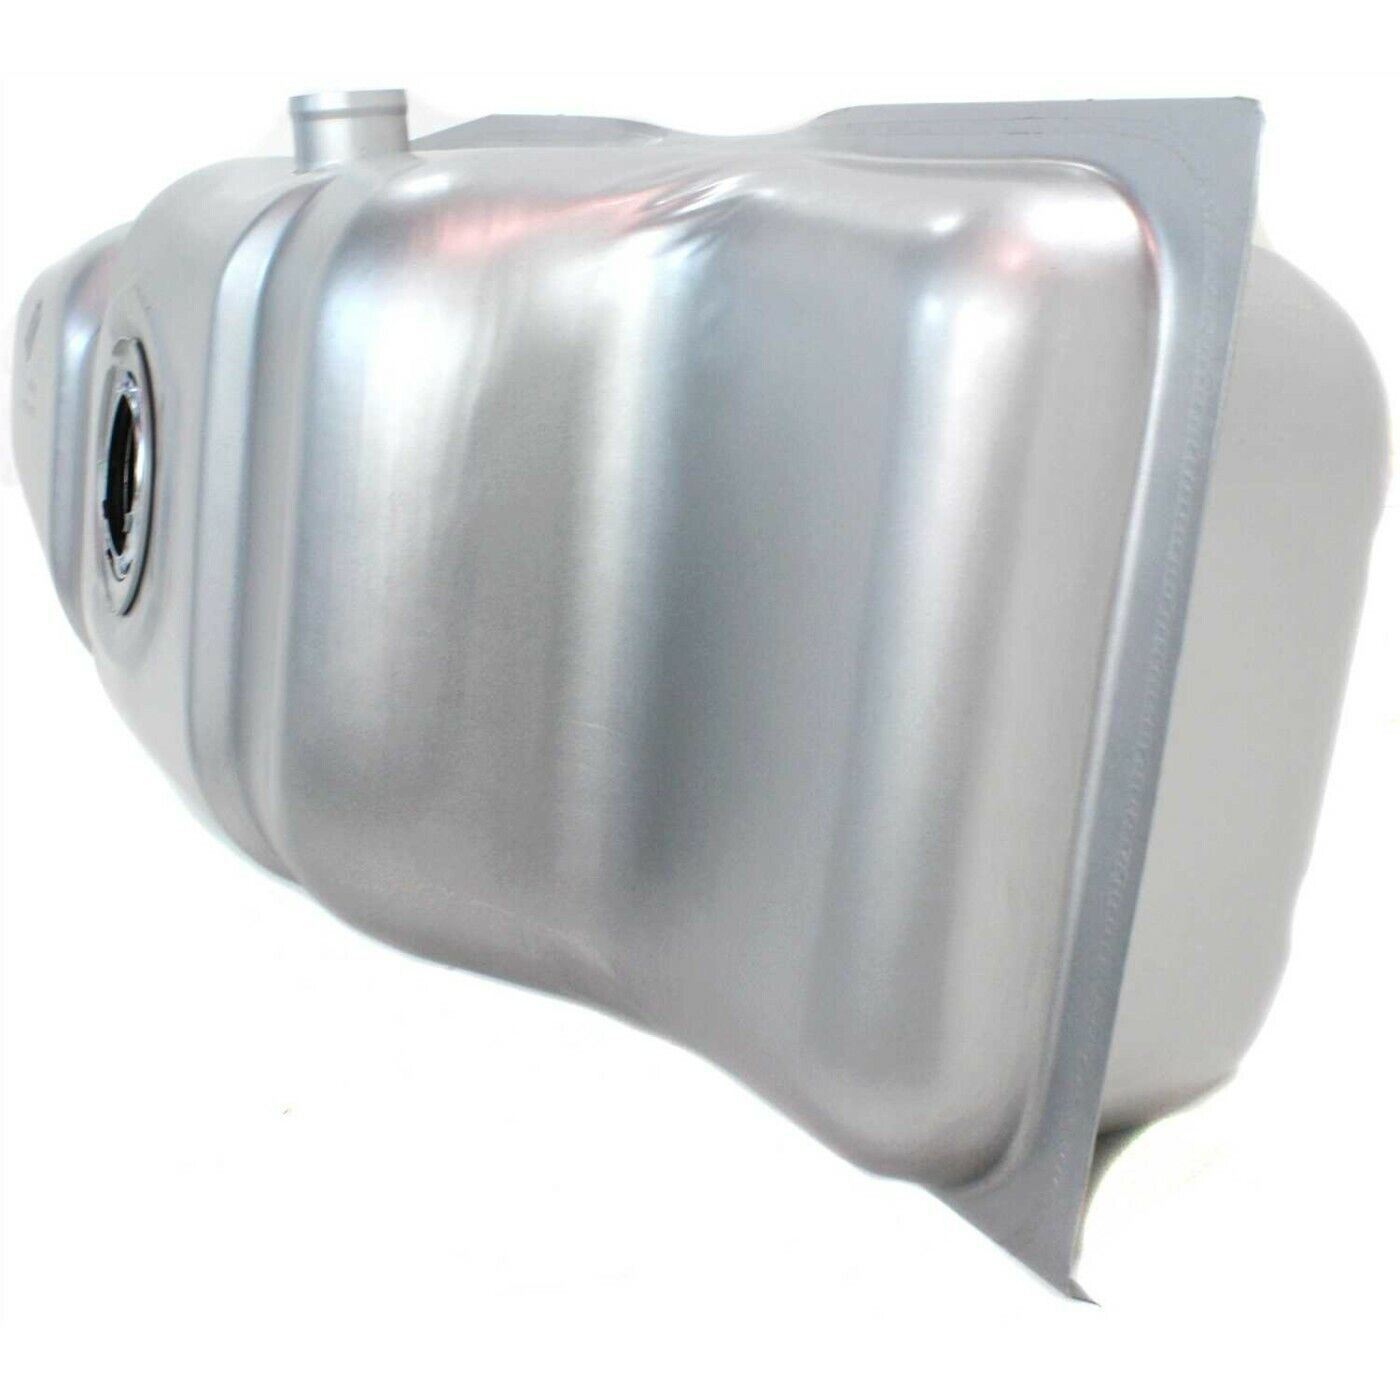 Steel For Chevy S10 Fuel Tank 1988 89 90 91 92 93 94 1995 Silver 2WD Standard /& Extended Cabs 15961070 GM3900105 20 Gallons // 76 Liters Capacity